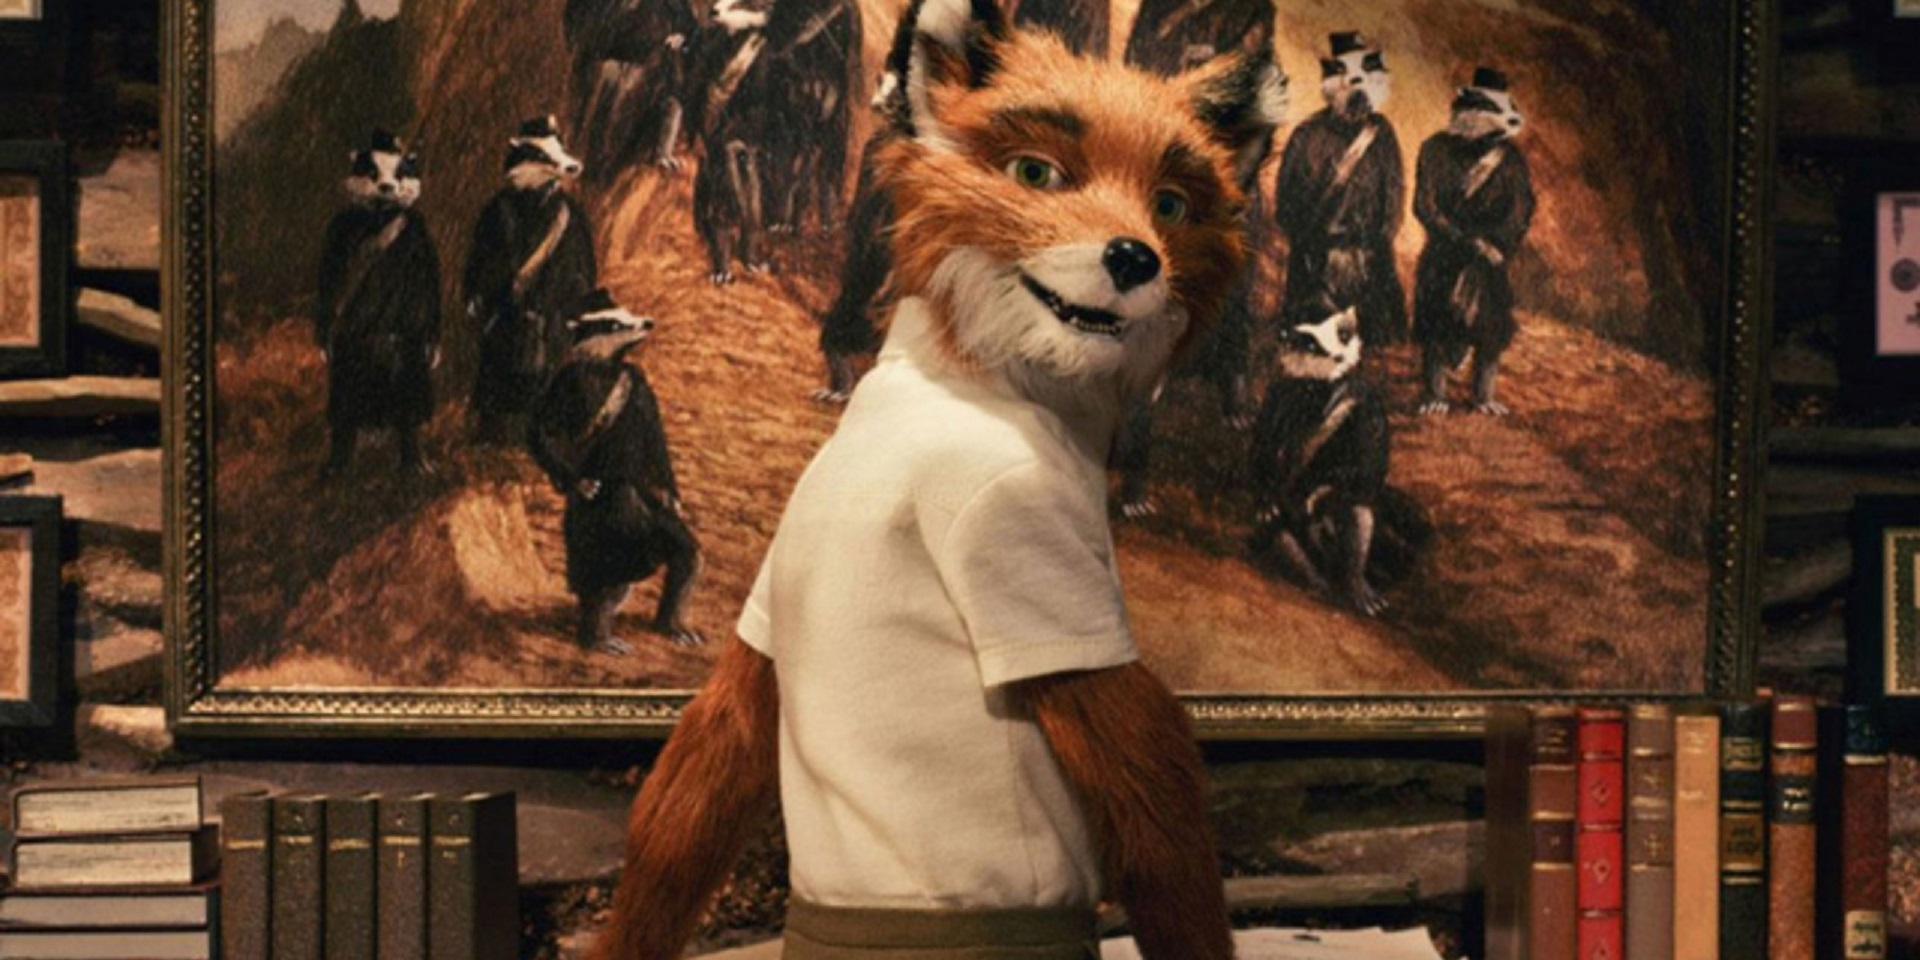 The Fantastic Mr Fox (voiced by George Clooney)